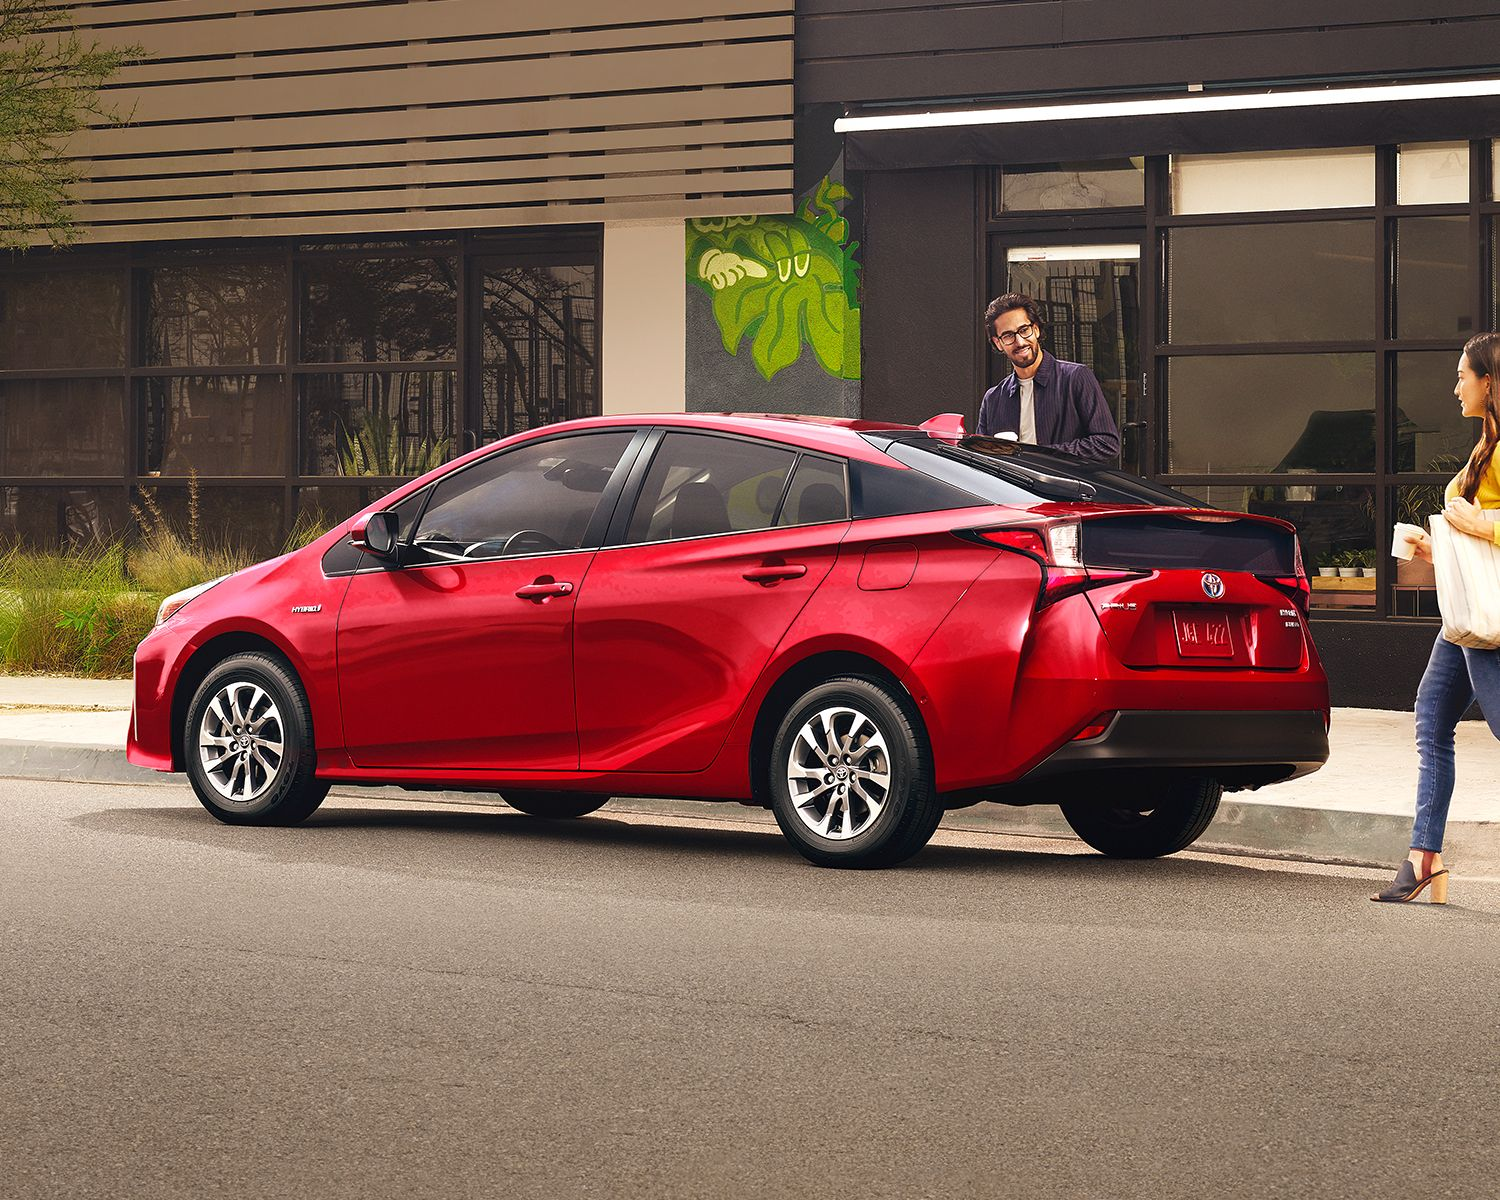 Prius Technology shown in Supersonic Red